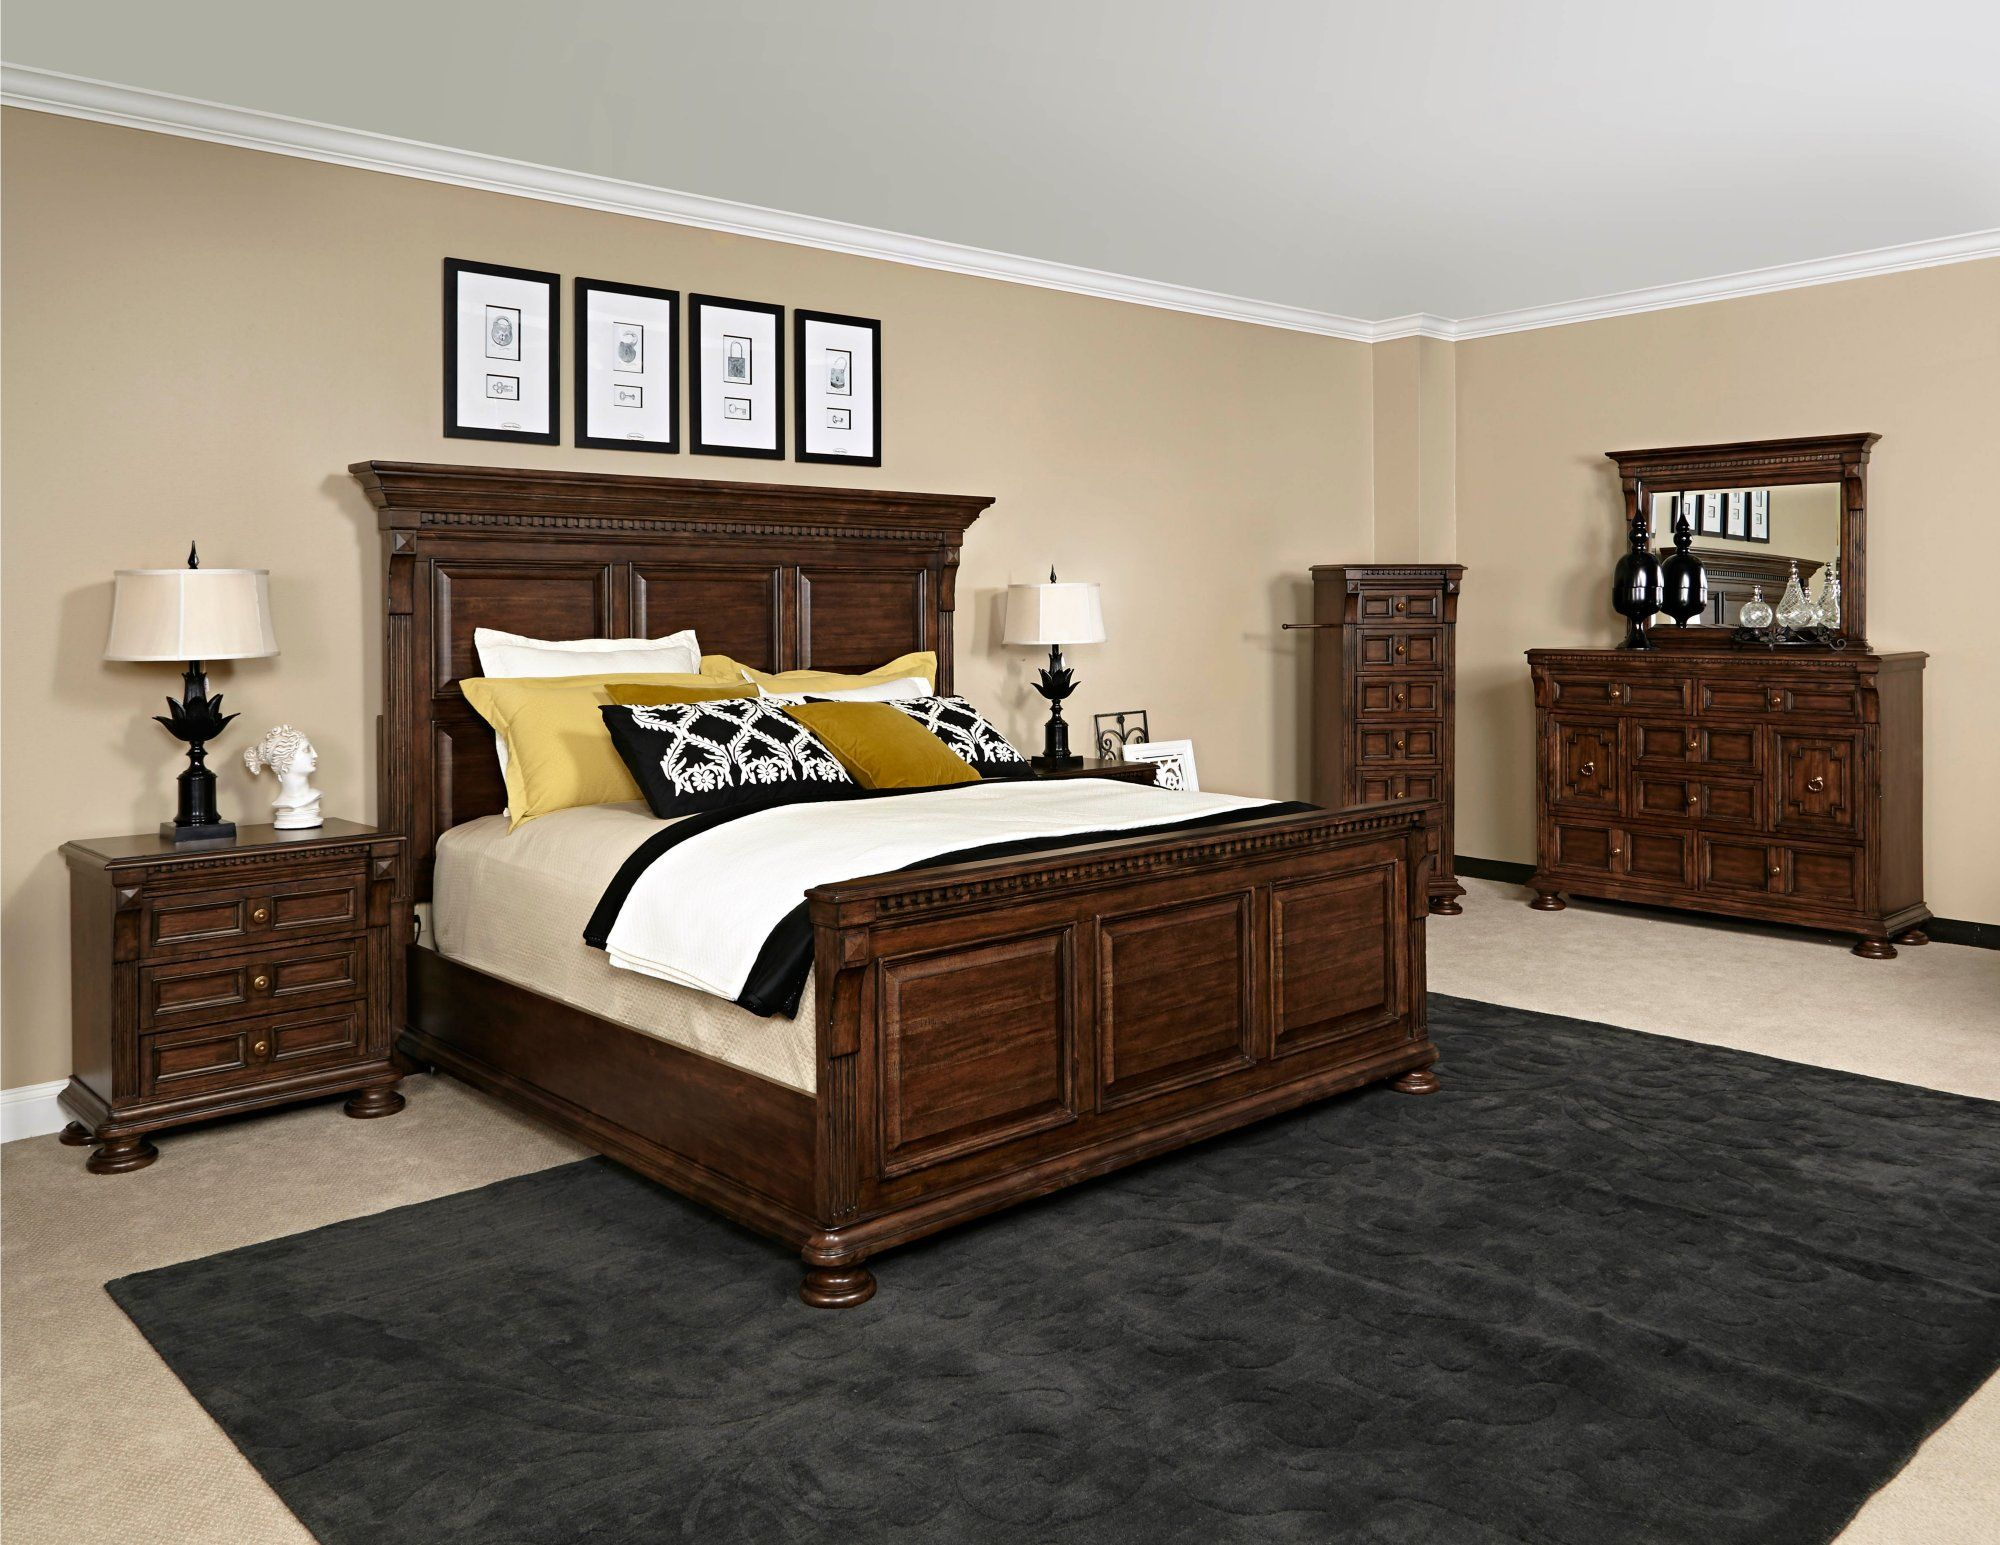 lyla broyhill post getting down bedroom furniture valuable thing ...